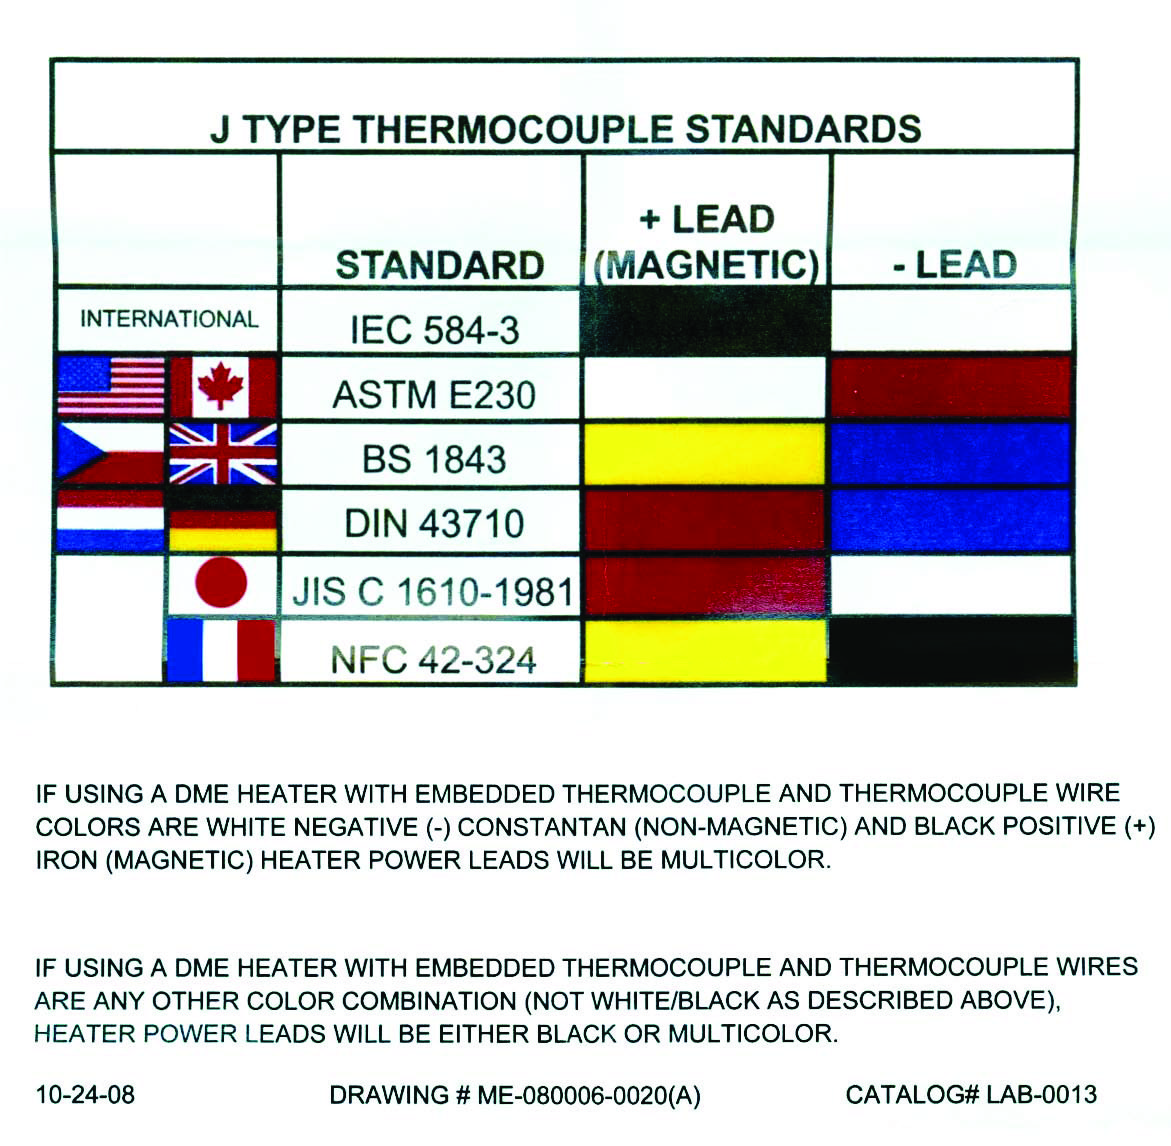 I notice that some thermocouples have a different color code scheme ...